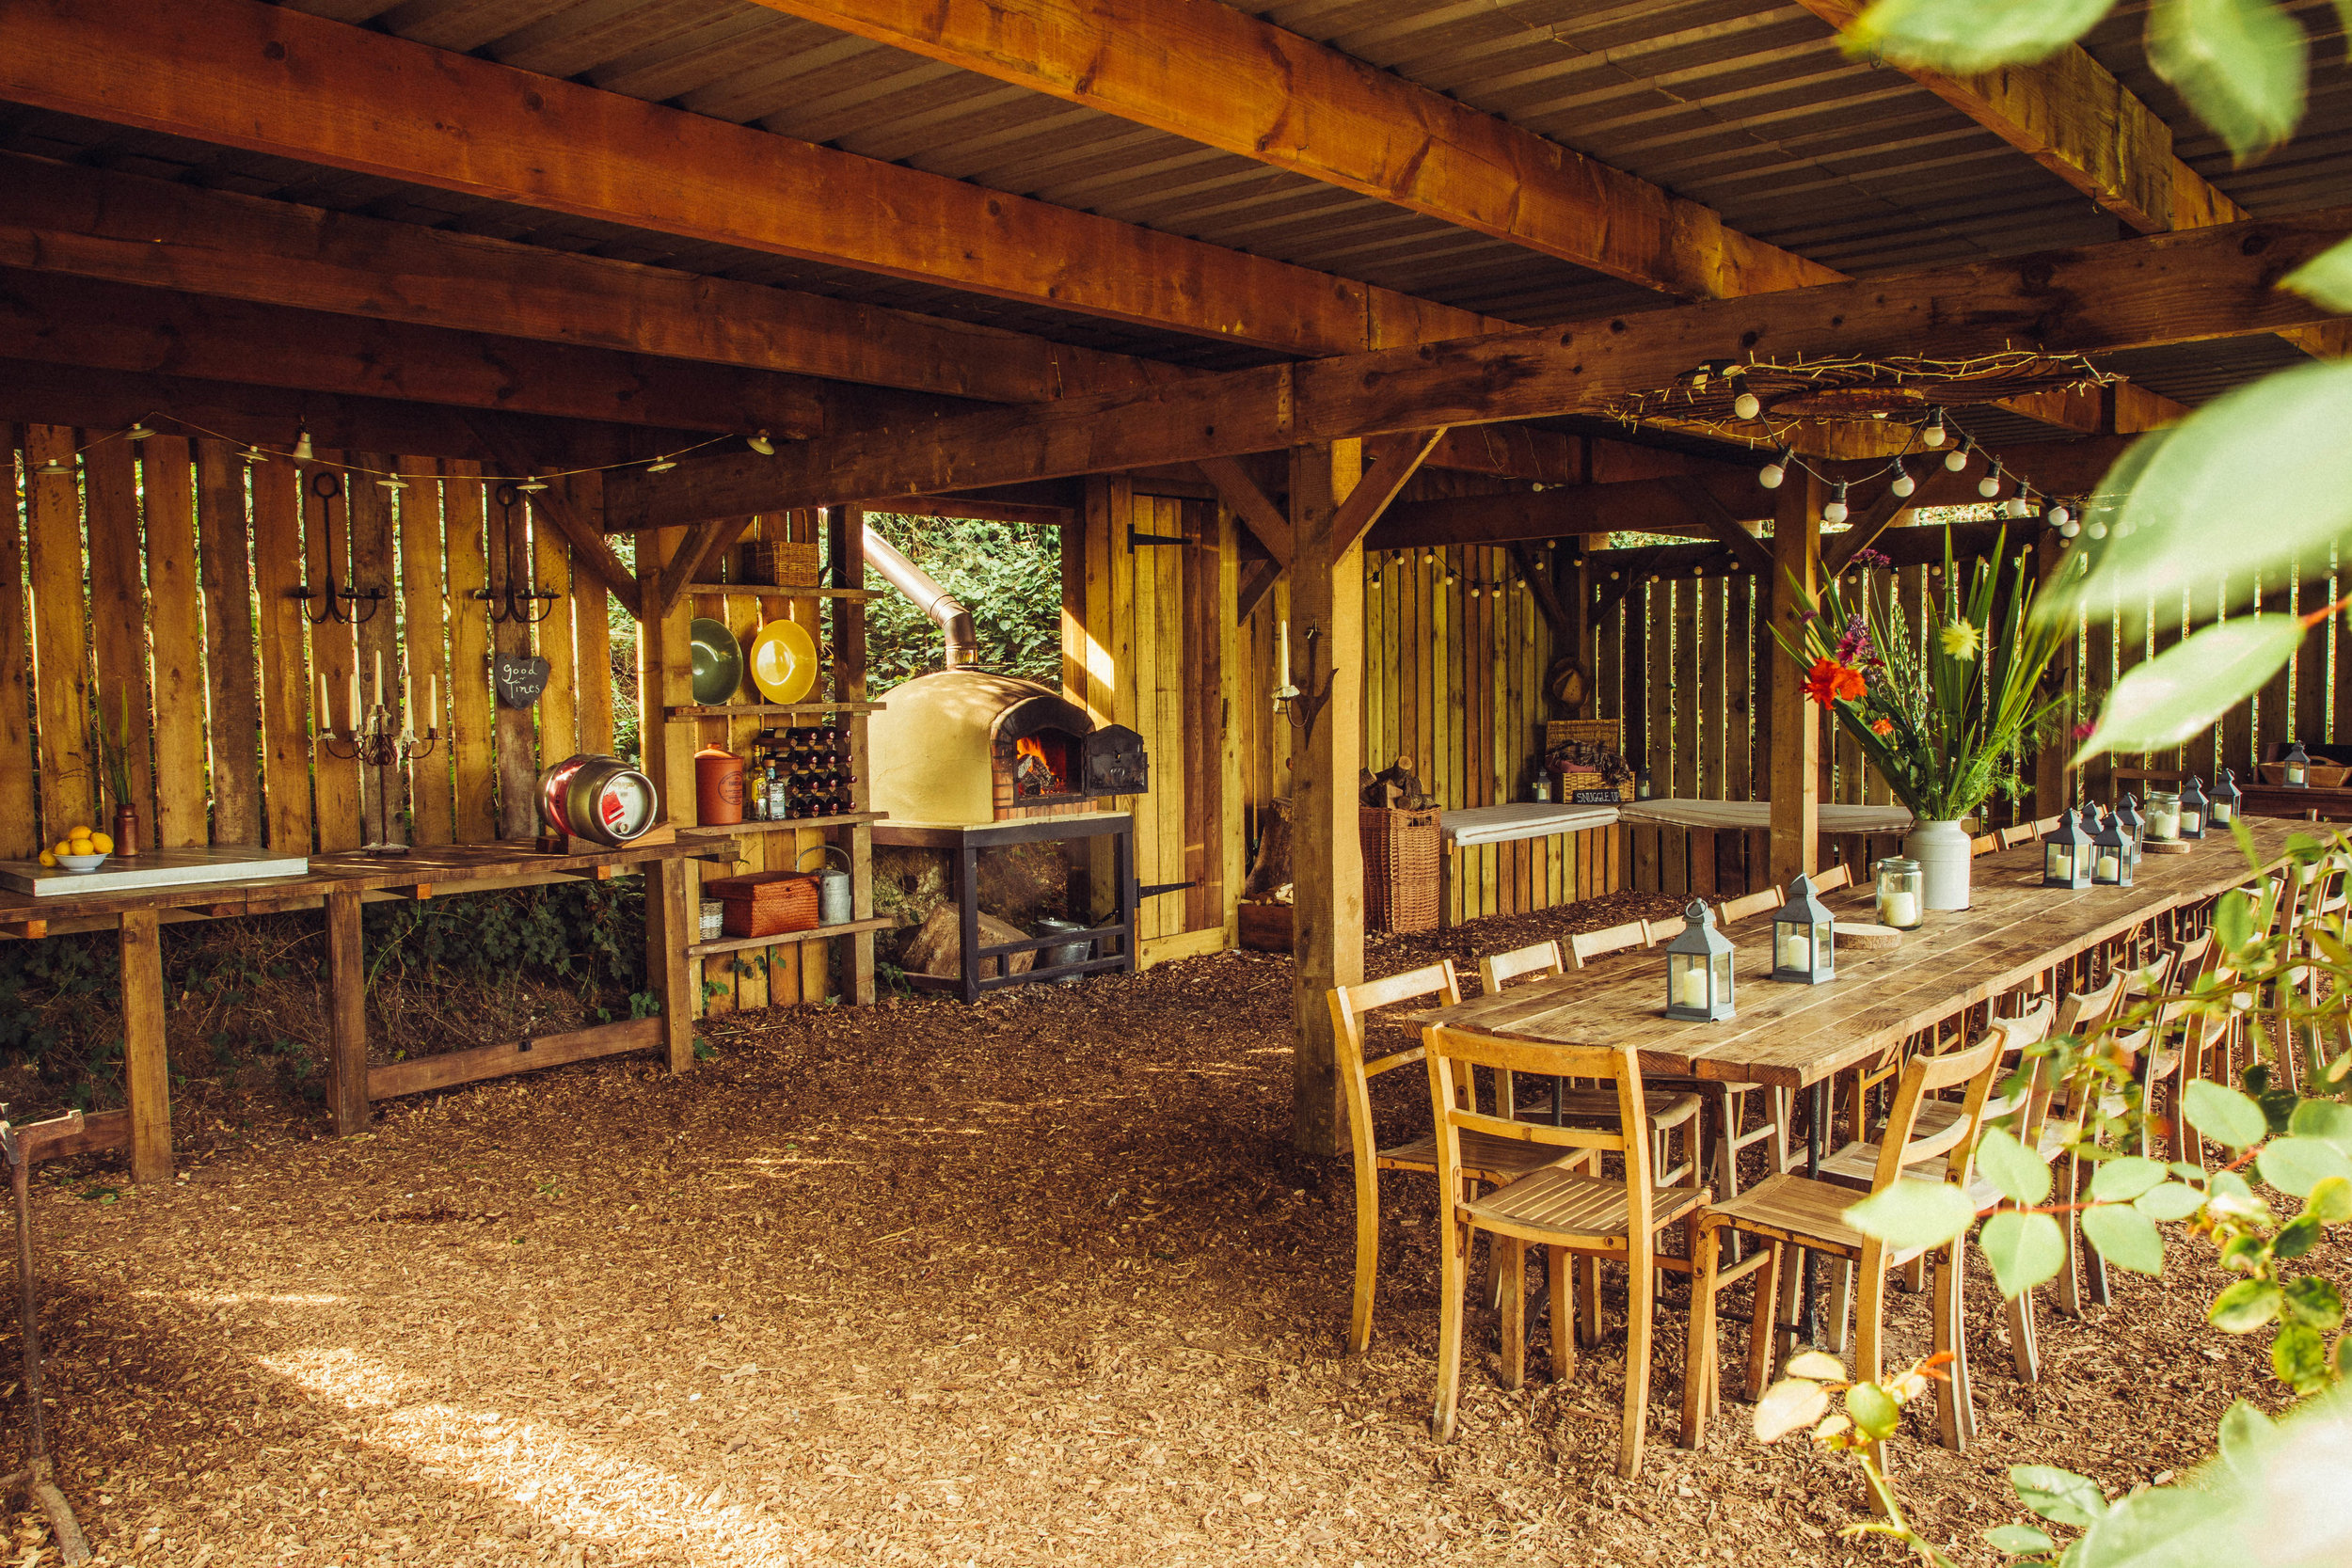 THE FIELD SHELTER - A dedicated feasting and merry-making space with a stunning view down the valley